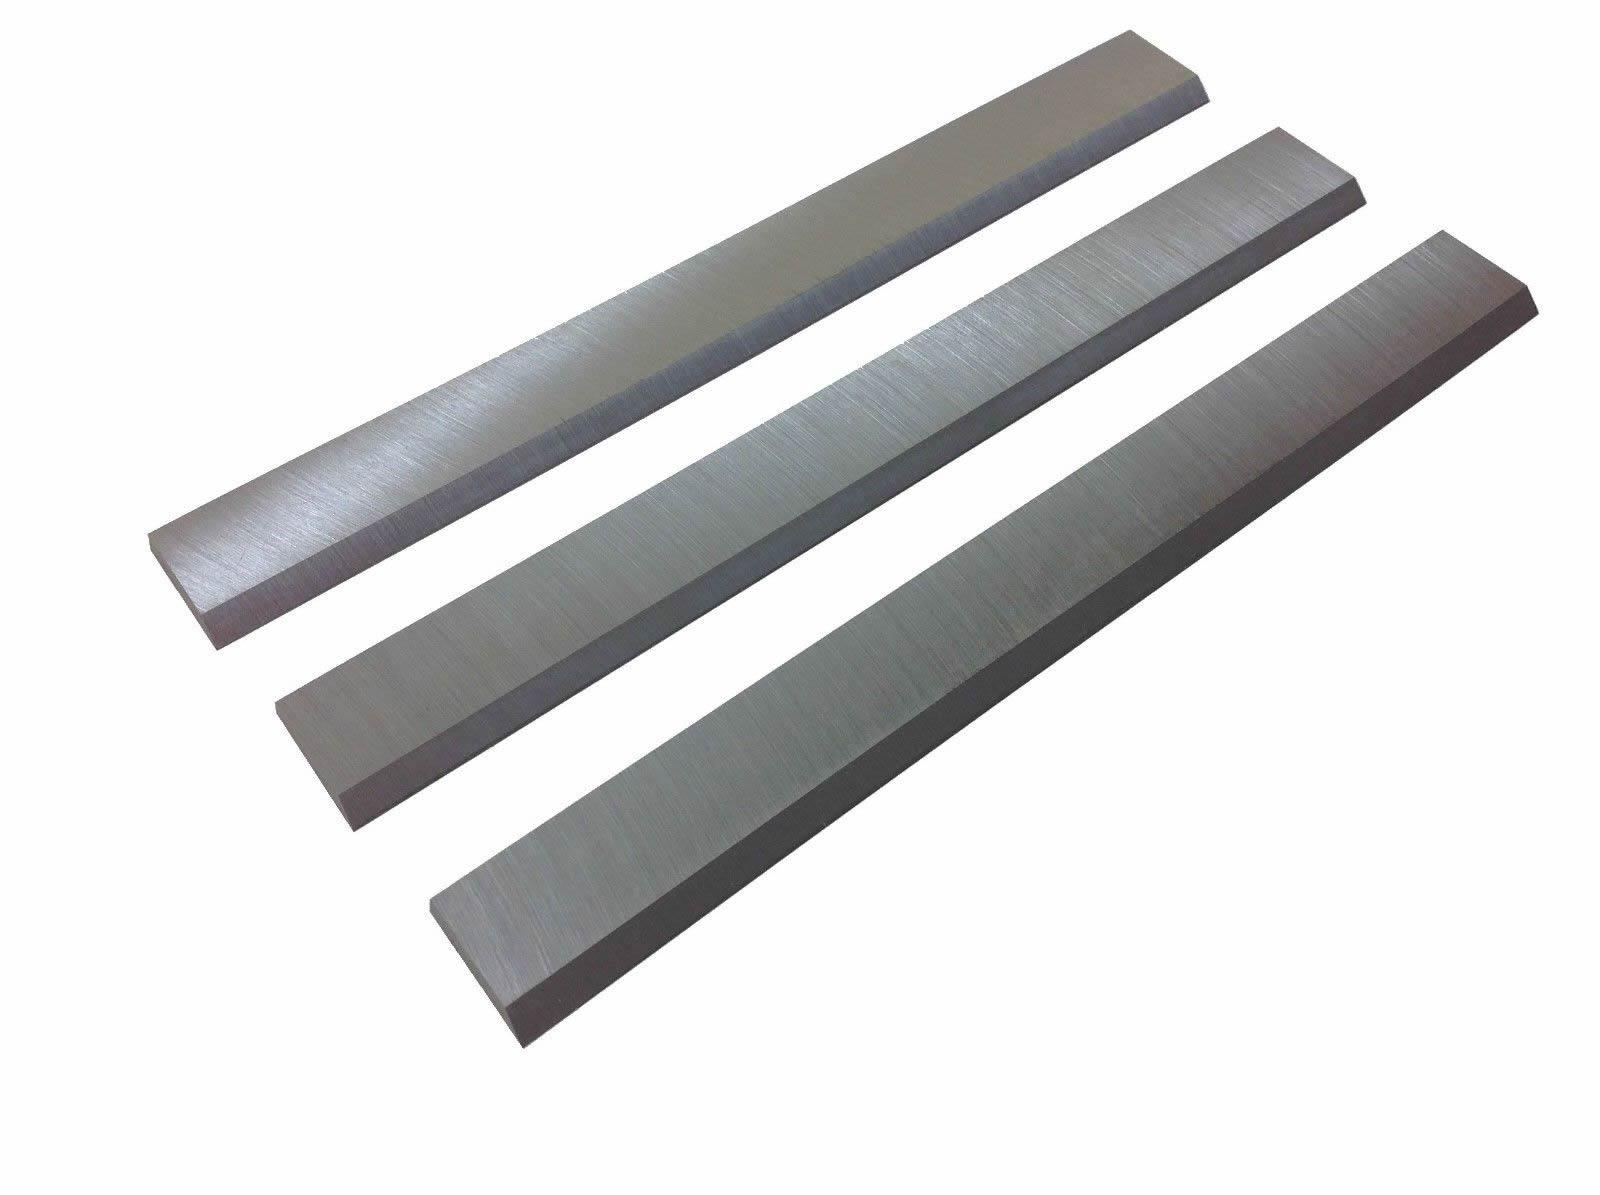 HZ 3PC 300x25x3mm High Speed Steel Industrial Planer And Jointer Knives Blades